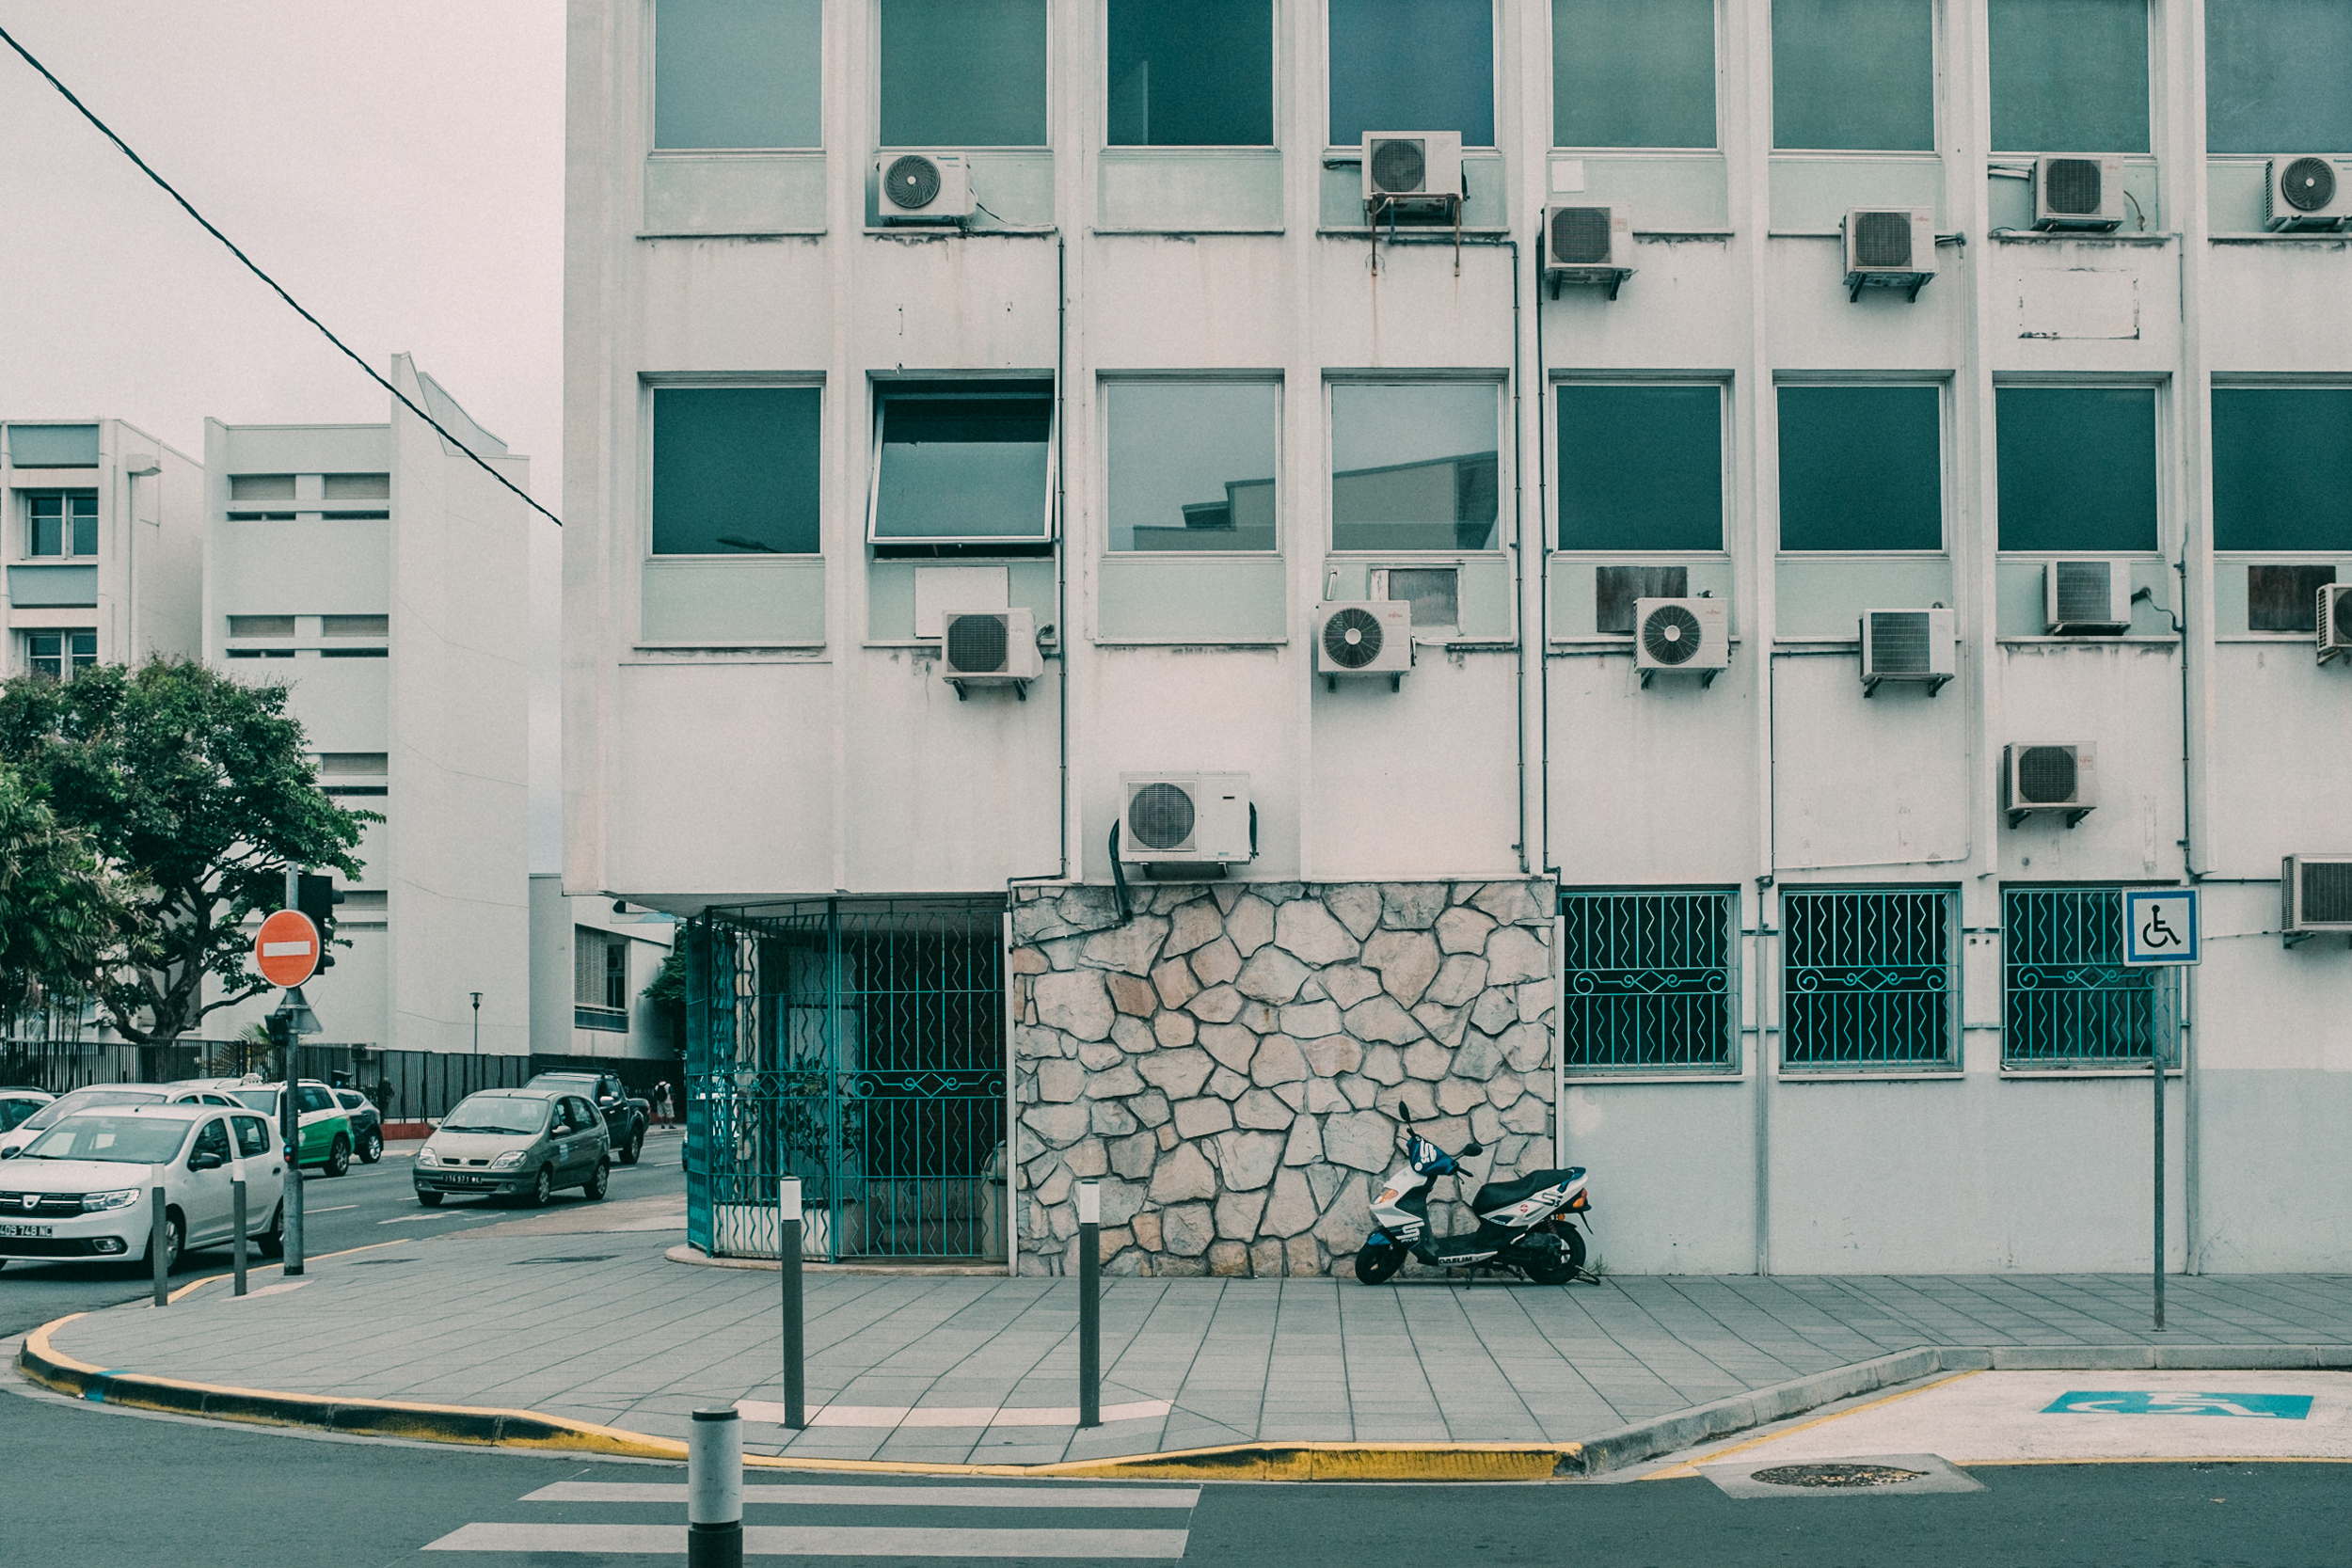 Air conditioners    Noumea - (2018)